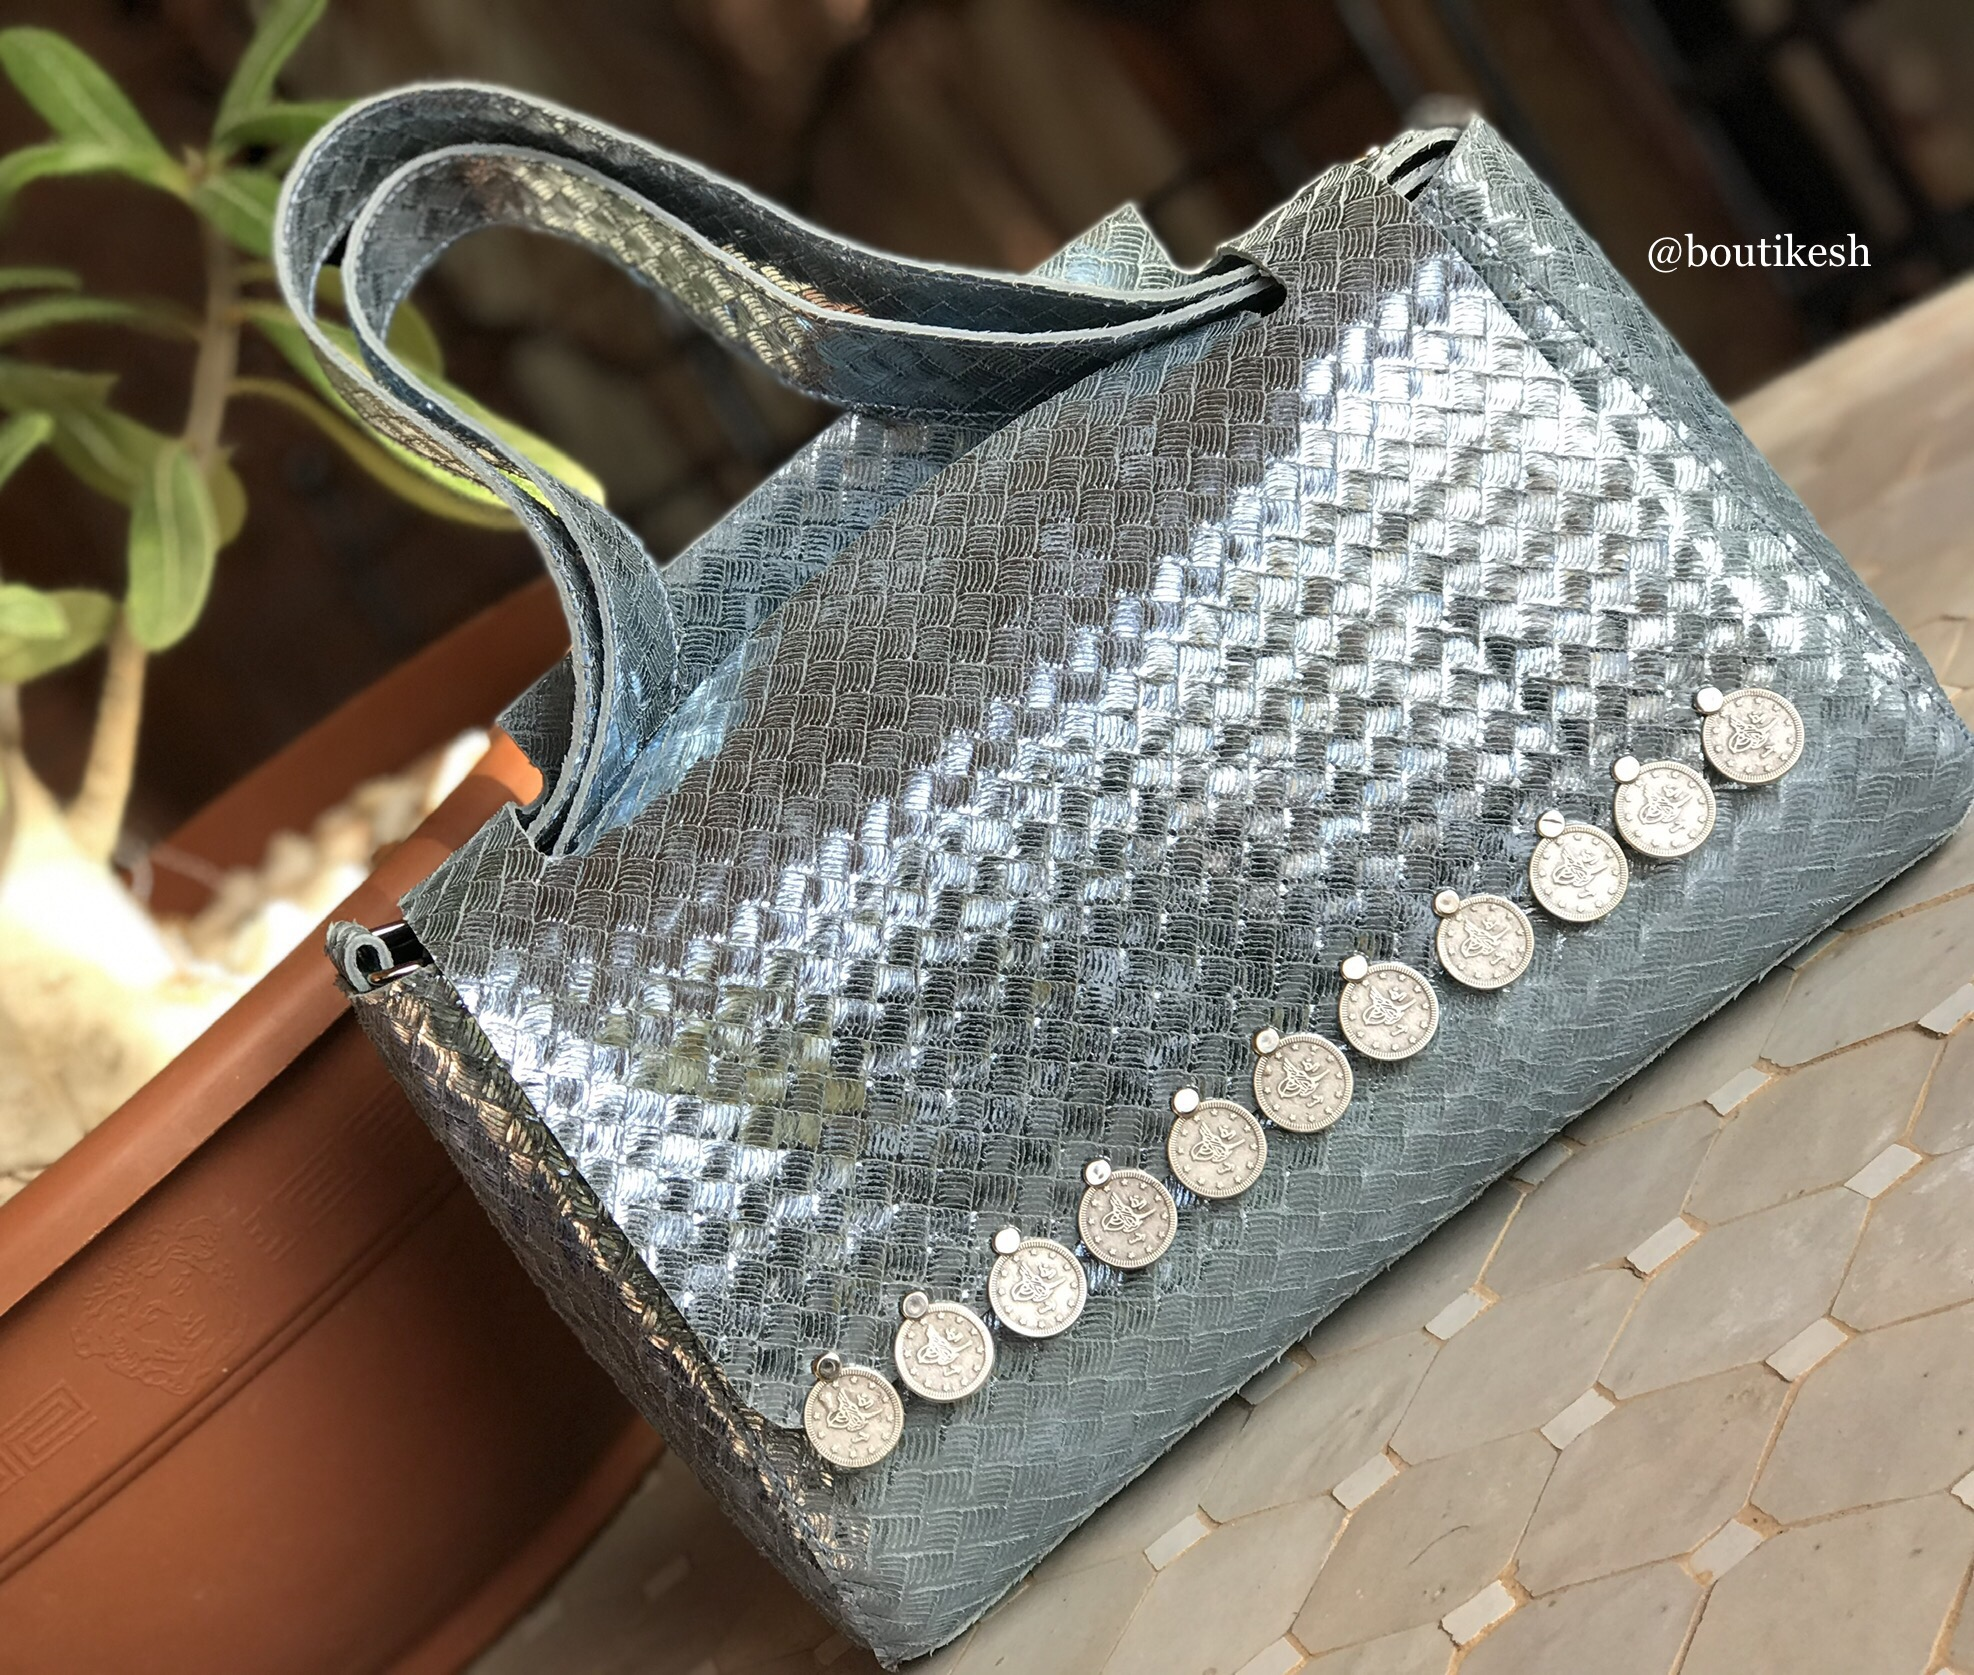 Bag leather light blue silver with coins